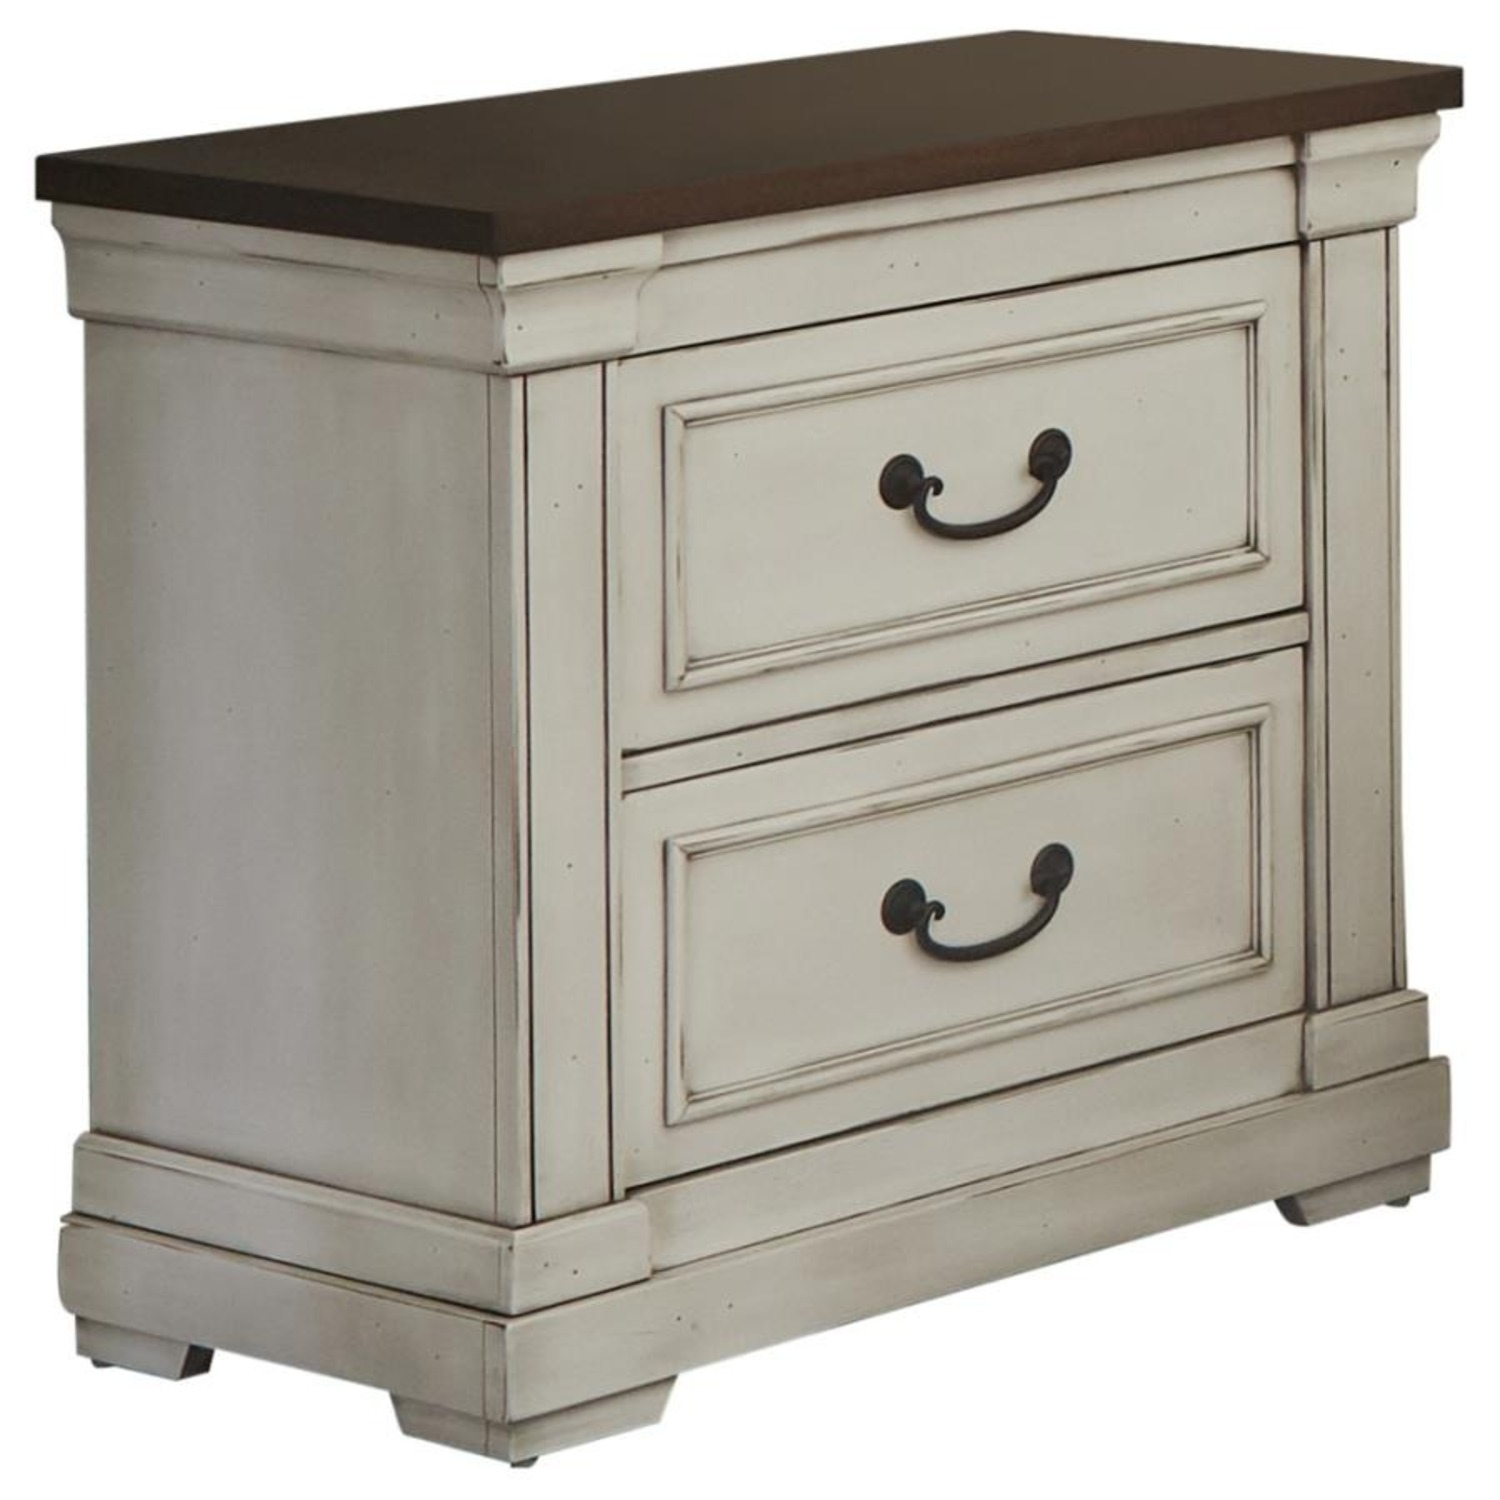 Nightstand W/ 2 Drawers In Dark Rum Finish - image-0